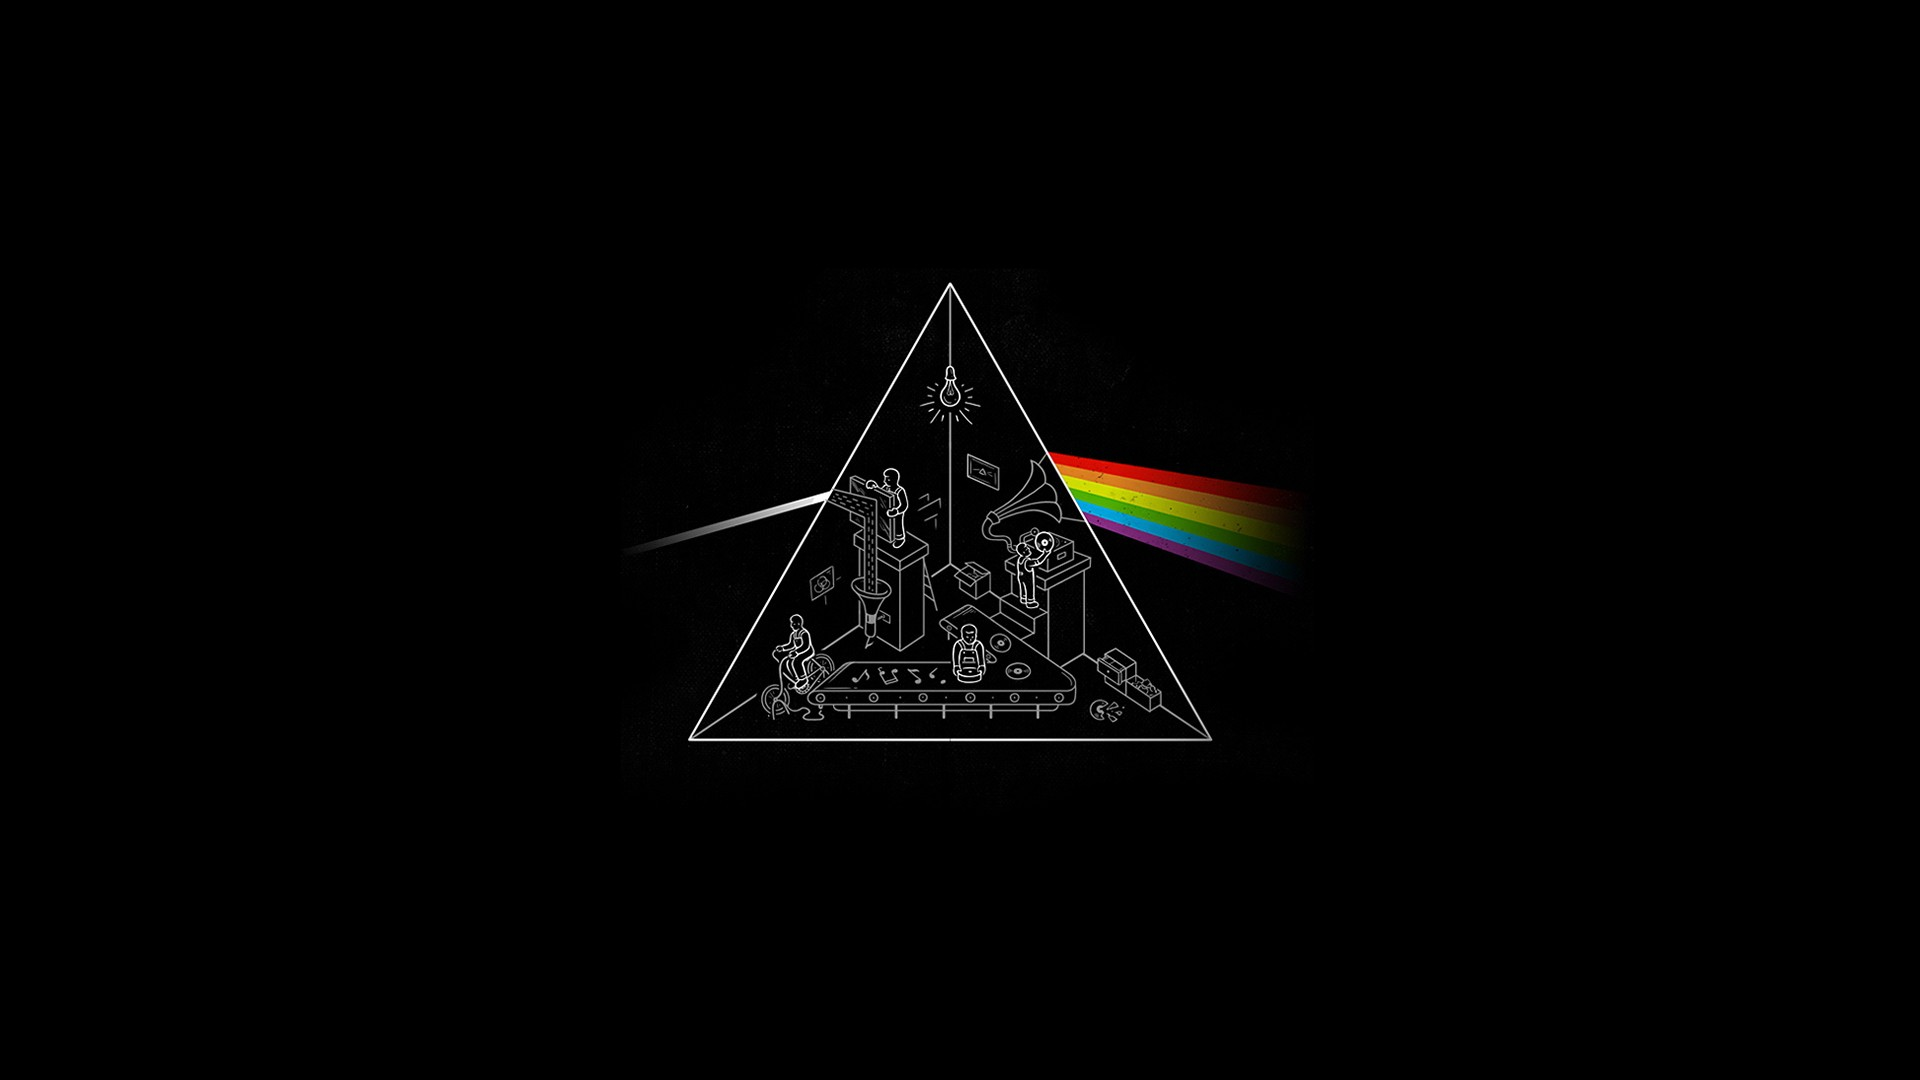 pink floyd computer wallpapers desktop backgrounds